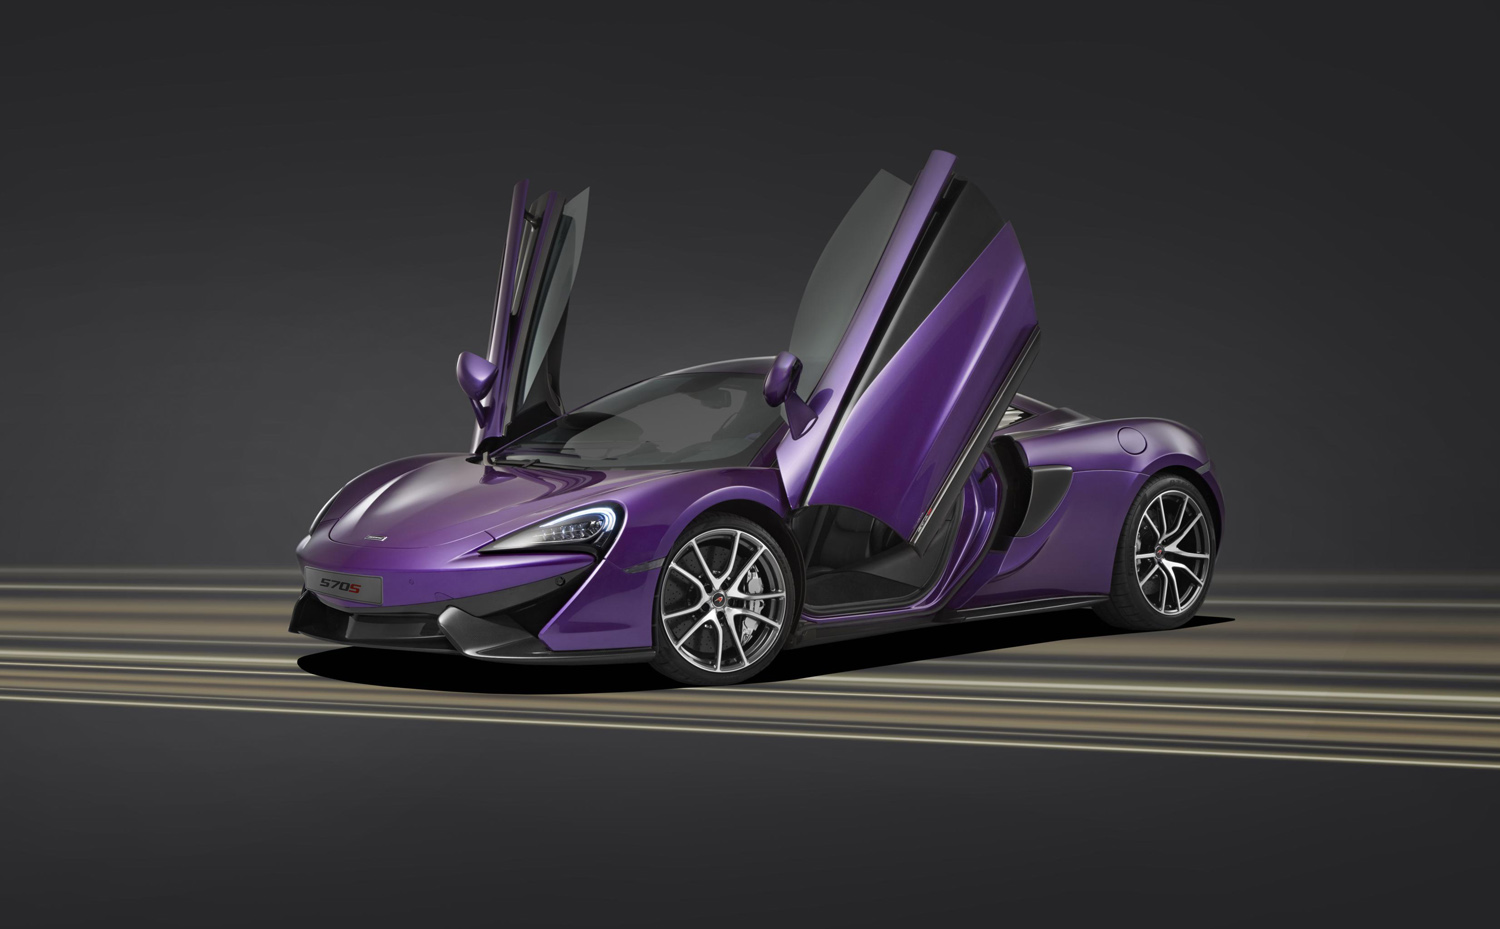 This One-Off McLaren is a Stunning Purple Porsche Eater